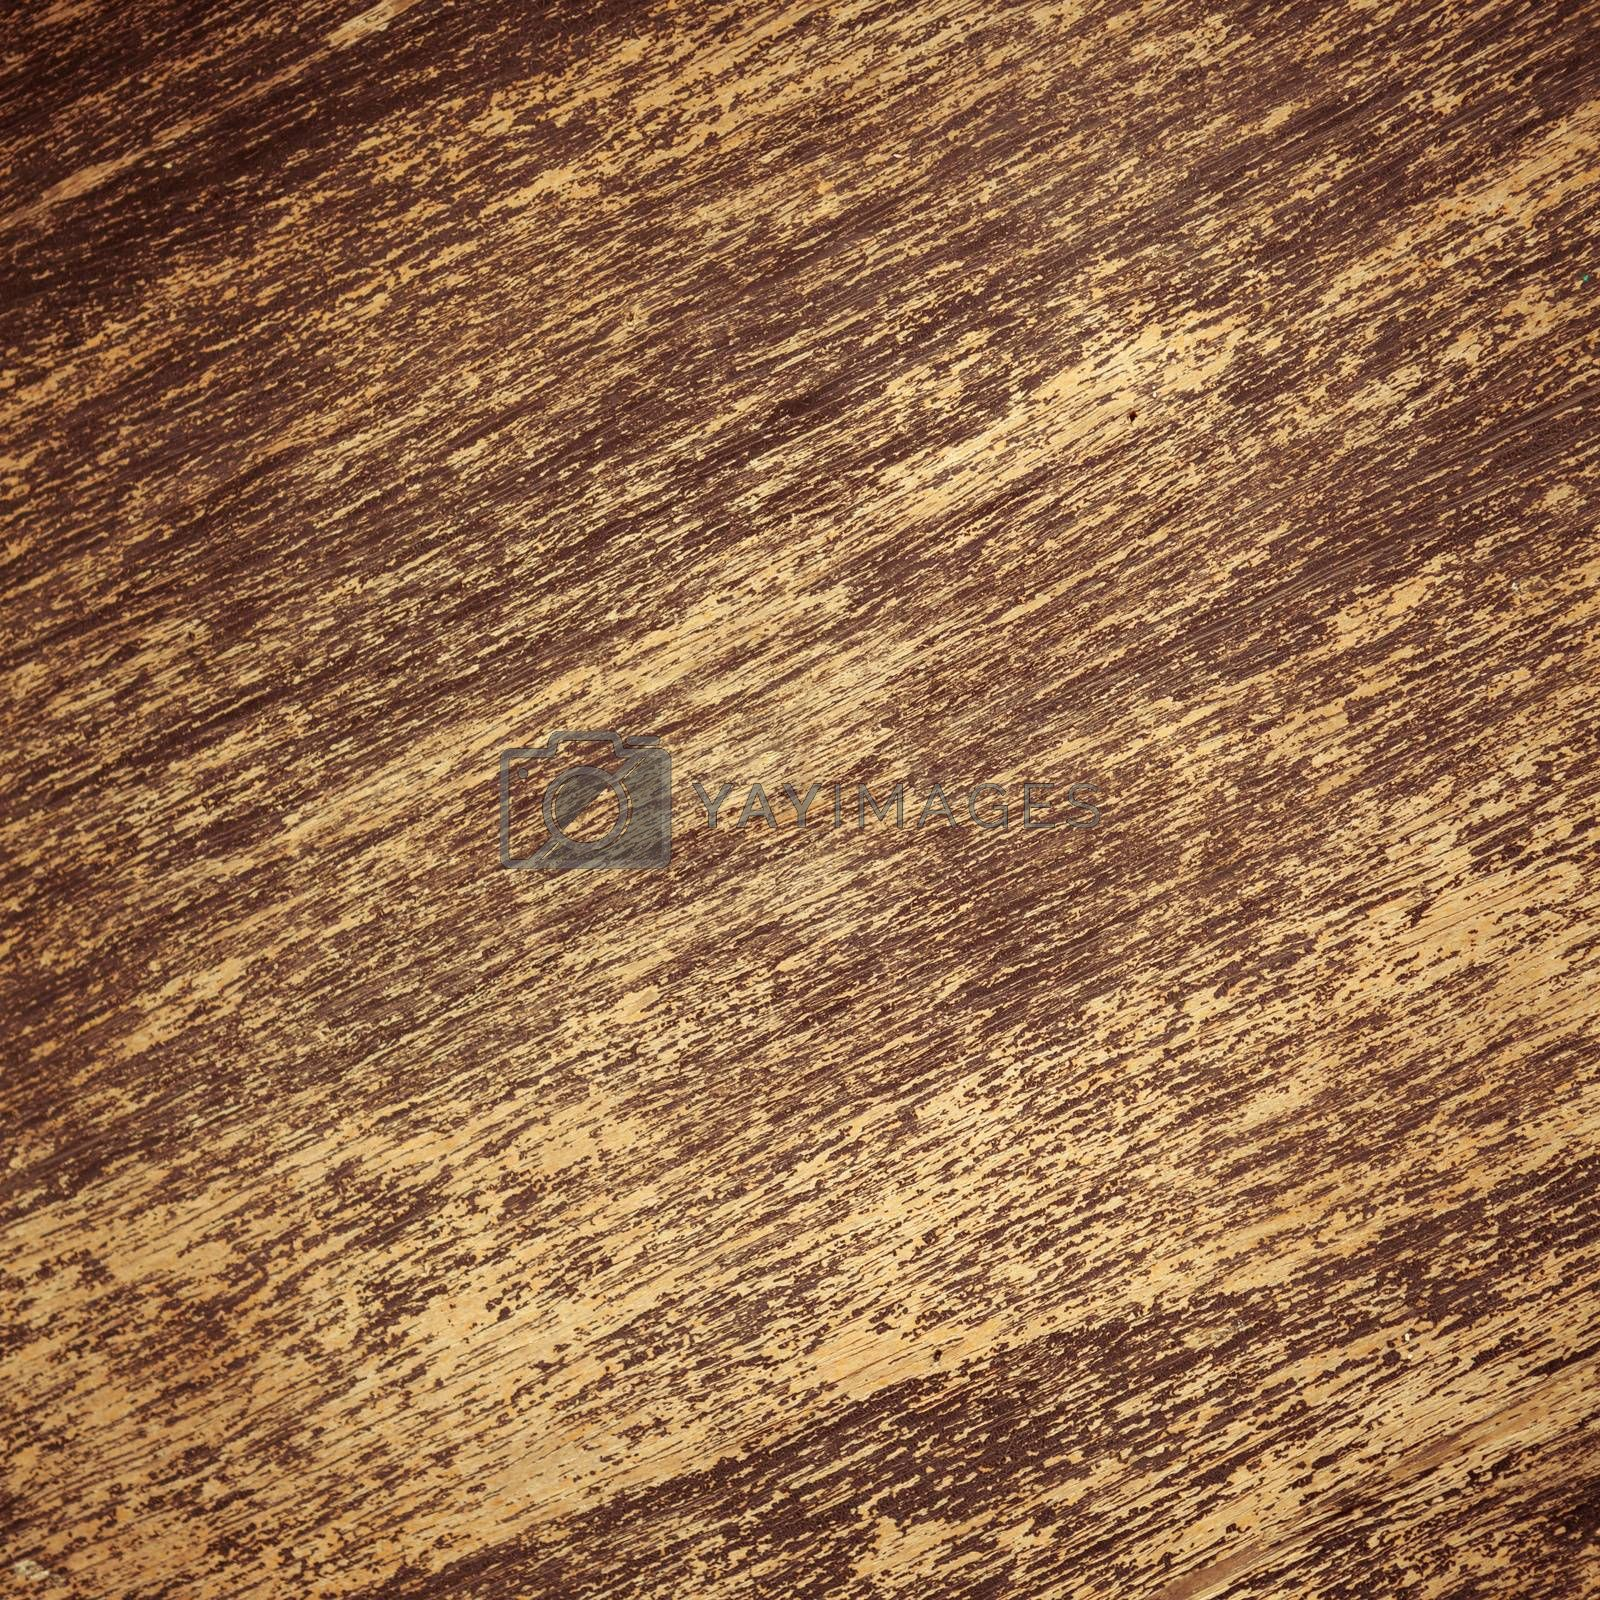 Abstract old wood texture as background